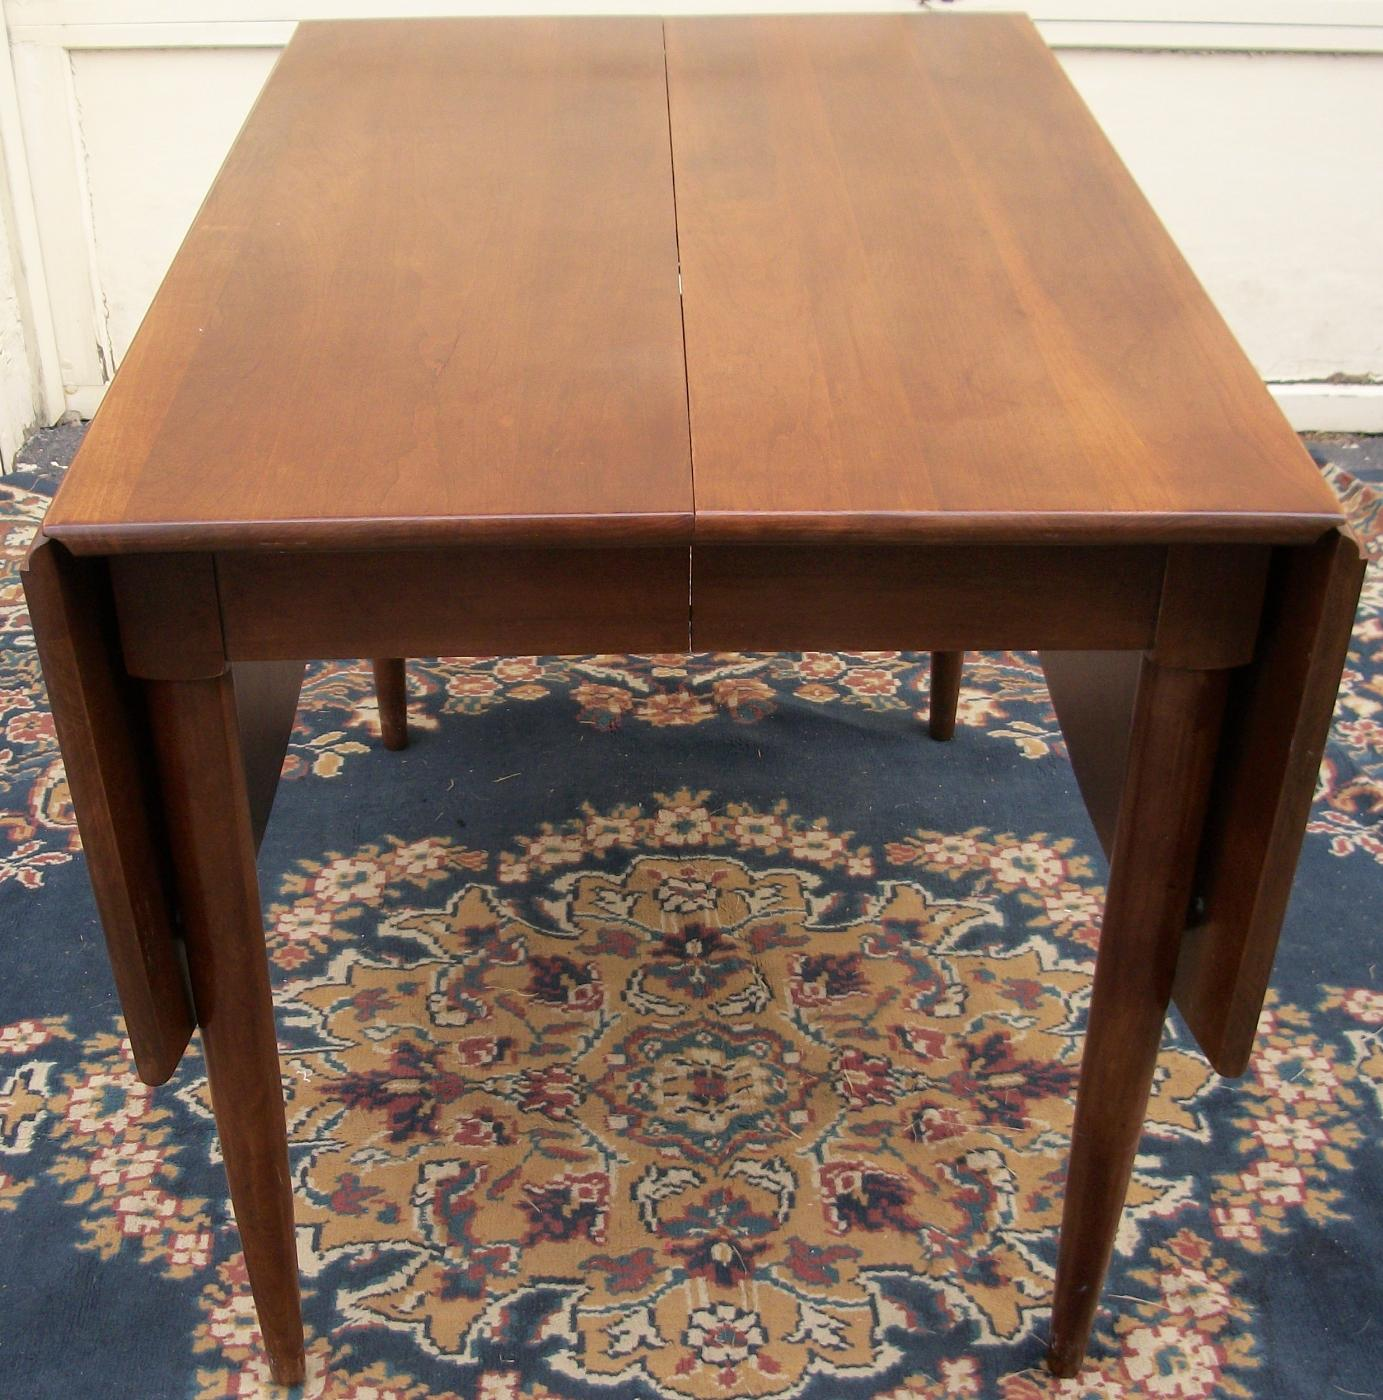 willett cherry drop leaf dining room table w six ForDining Room Tables Drop Leaf